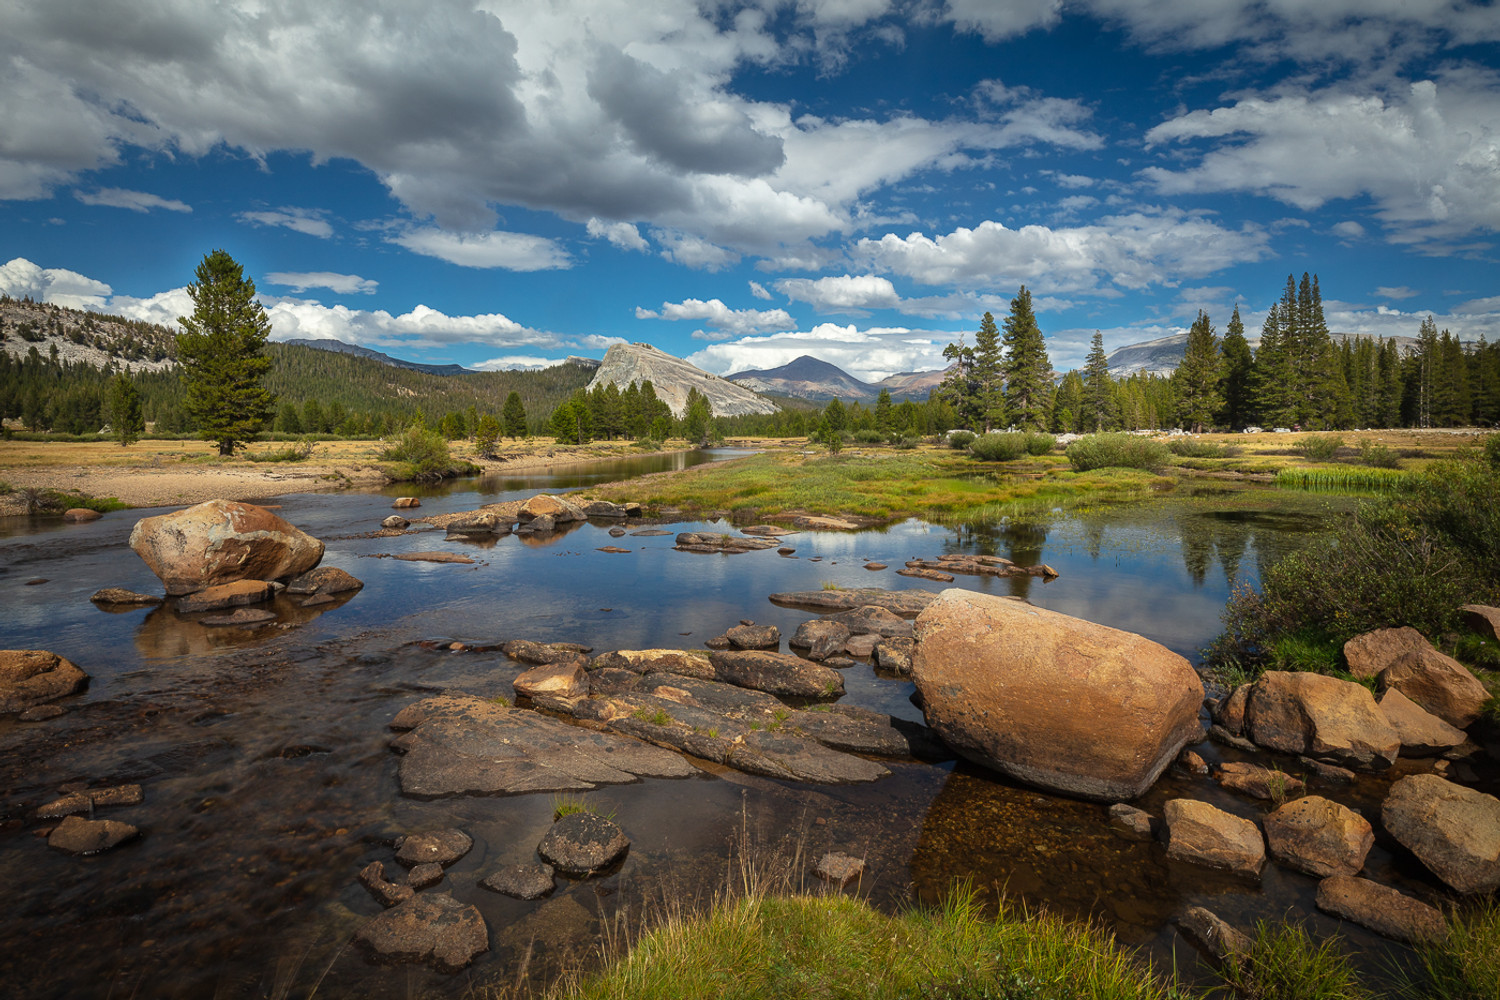 The Late Summer in Tuolumne